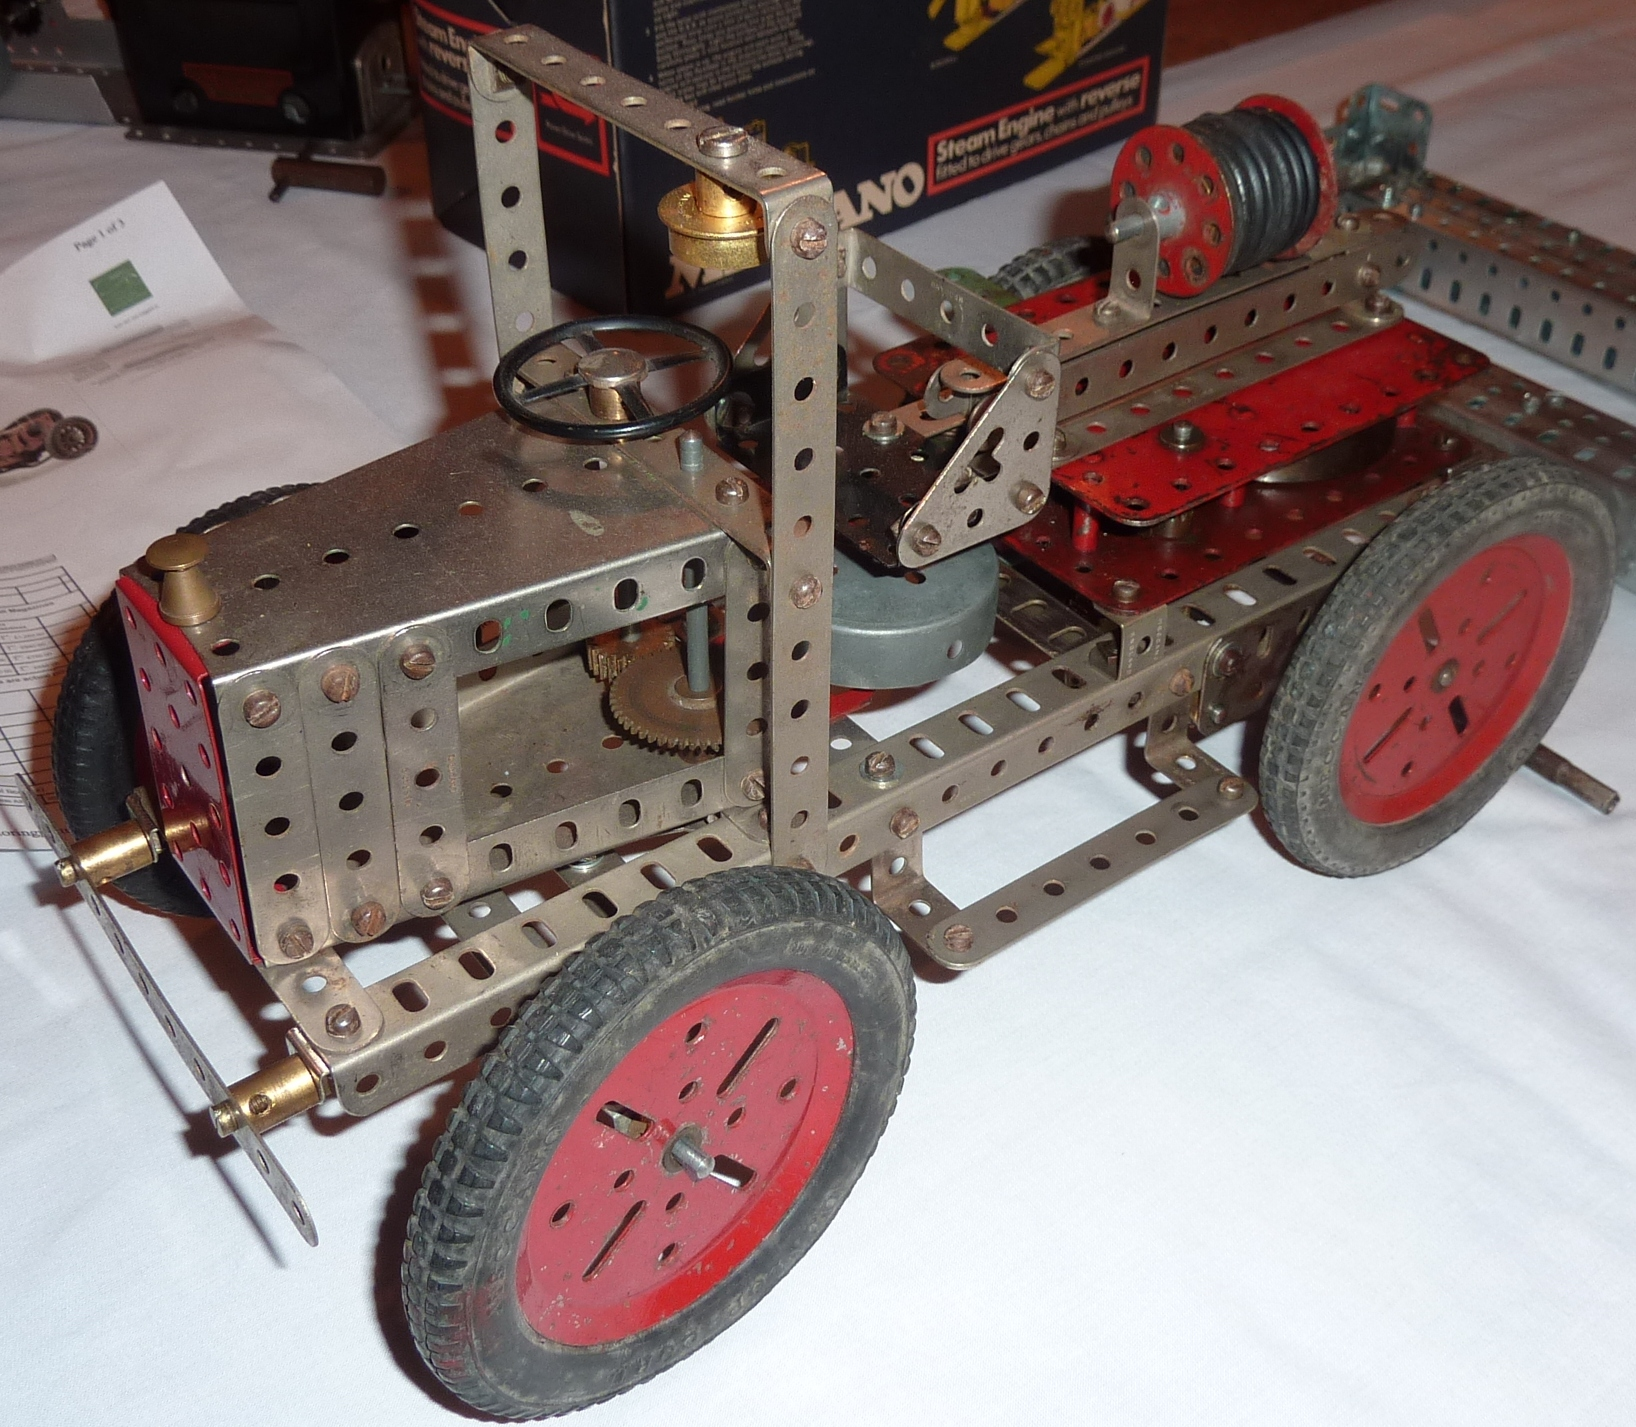 2011 October Nickel period manual model of a fire engine by David Northcott